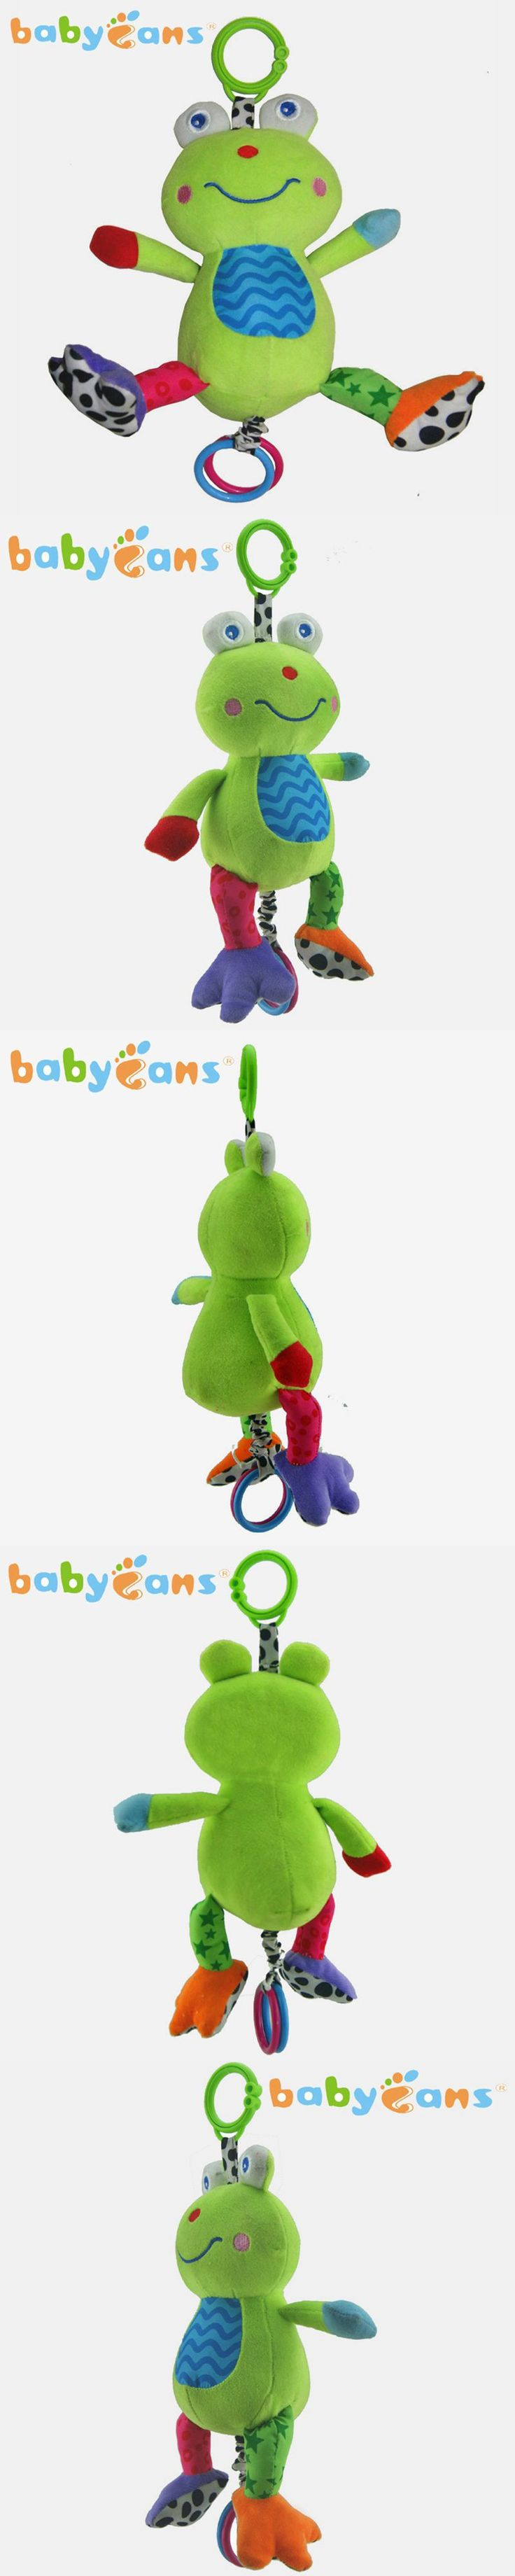 Sound Hanging Baby Rattles with Multifunction Bed Car Hang Baby Toy Musical Bug Cartoon Musical Animal Frog For Kids